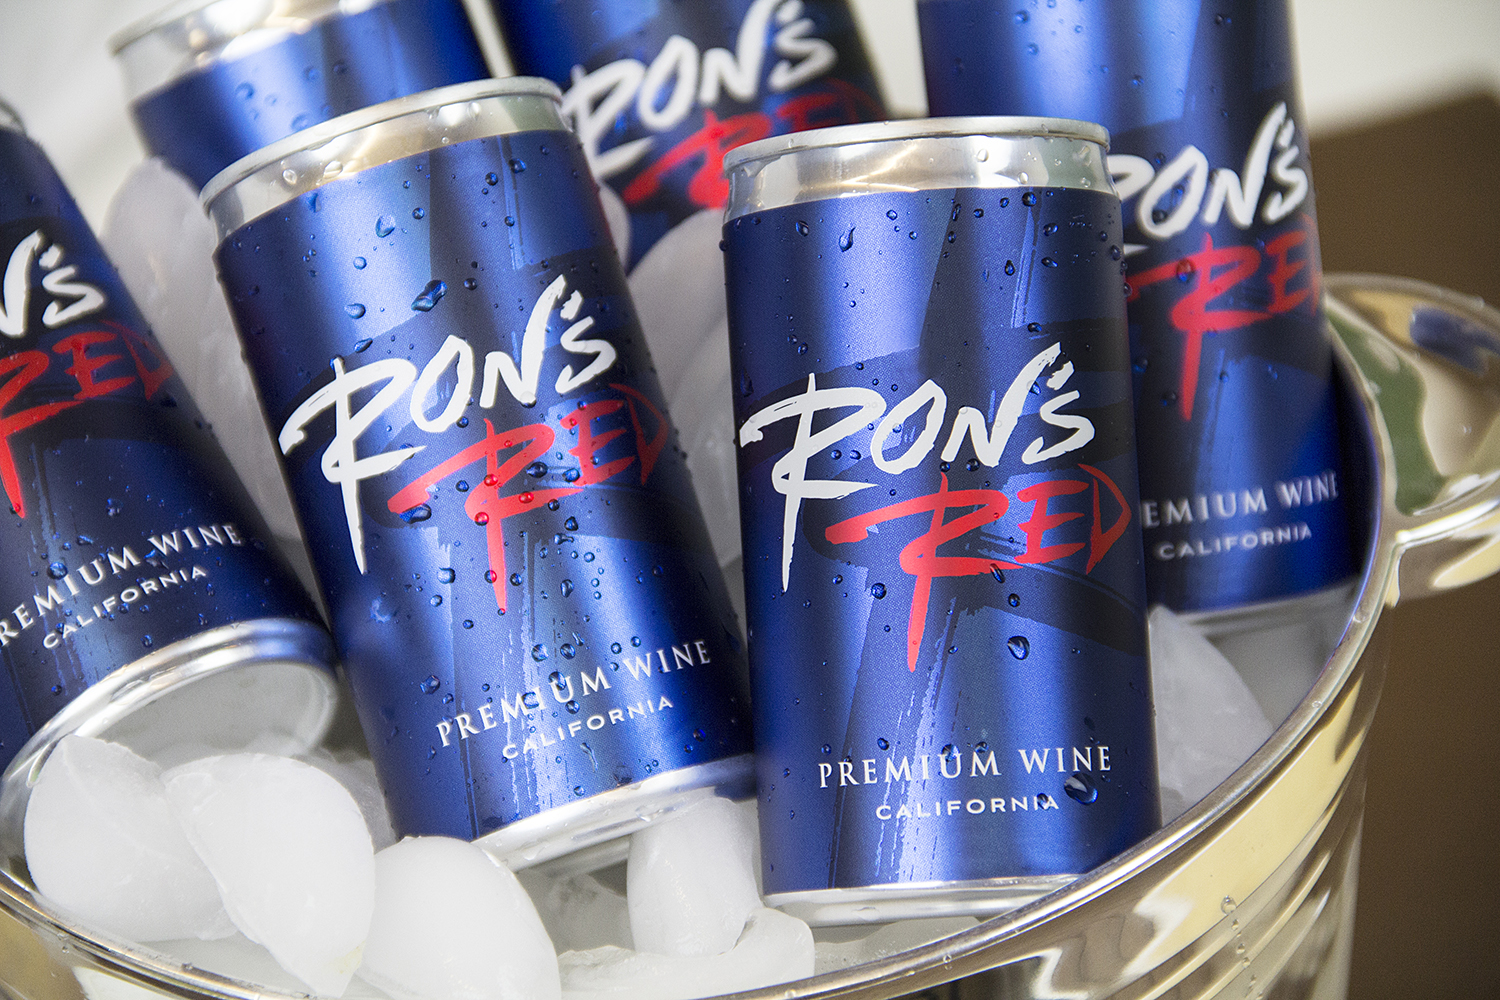 Ron's Red wine cans